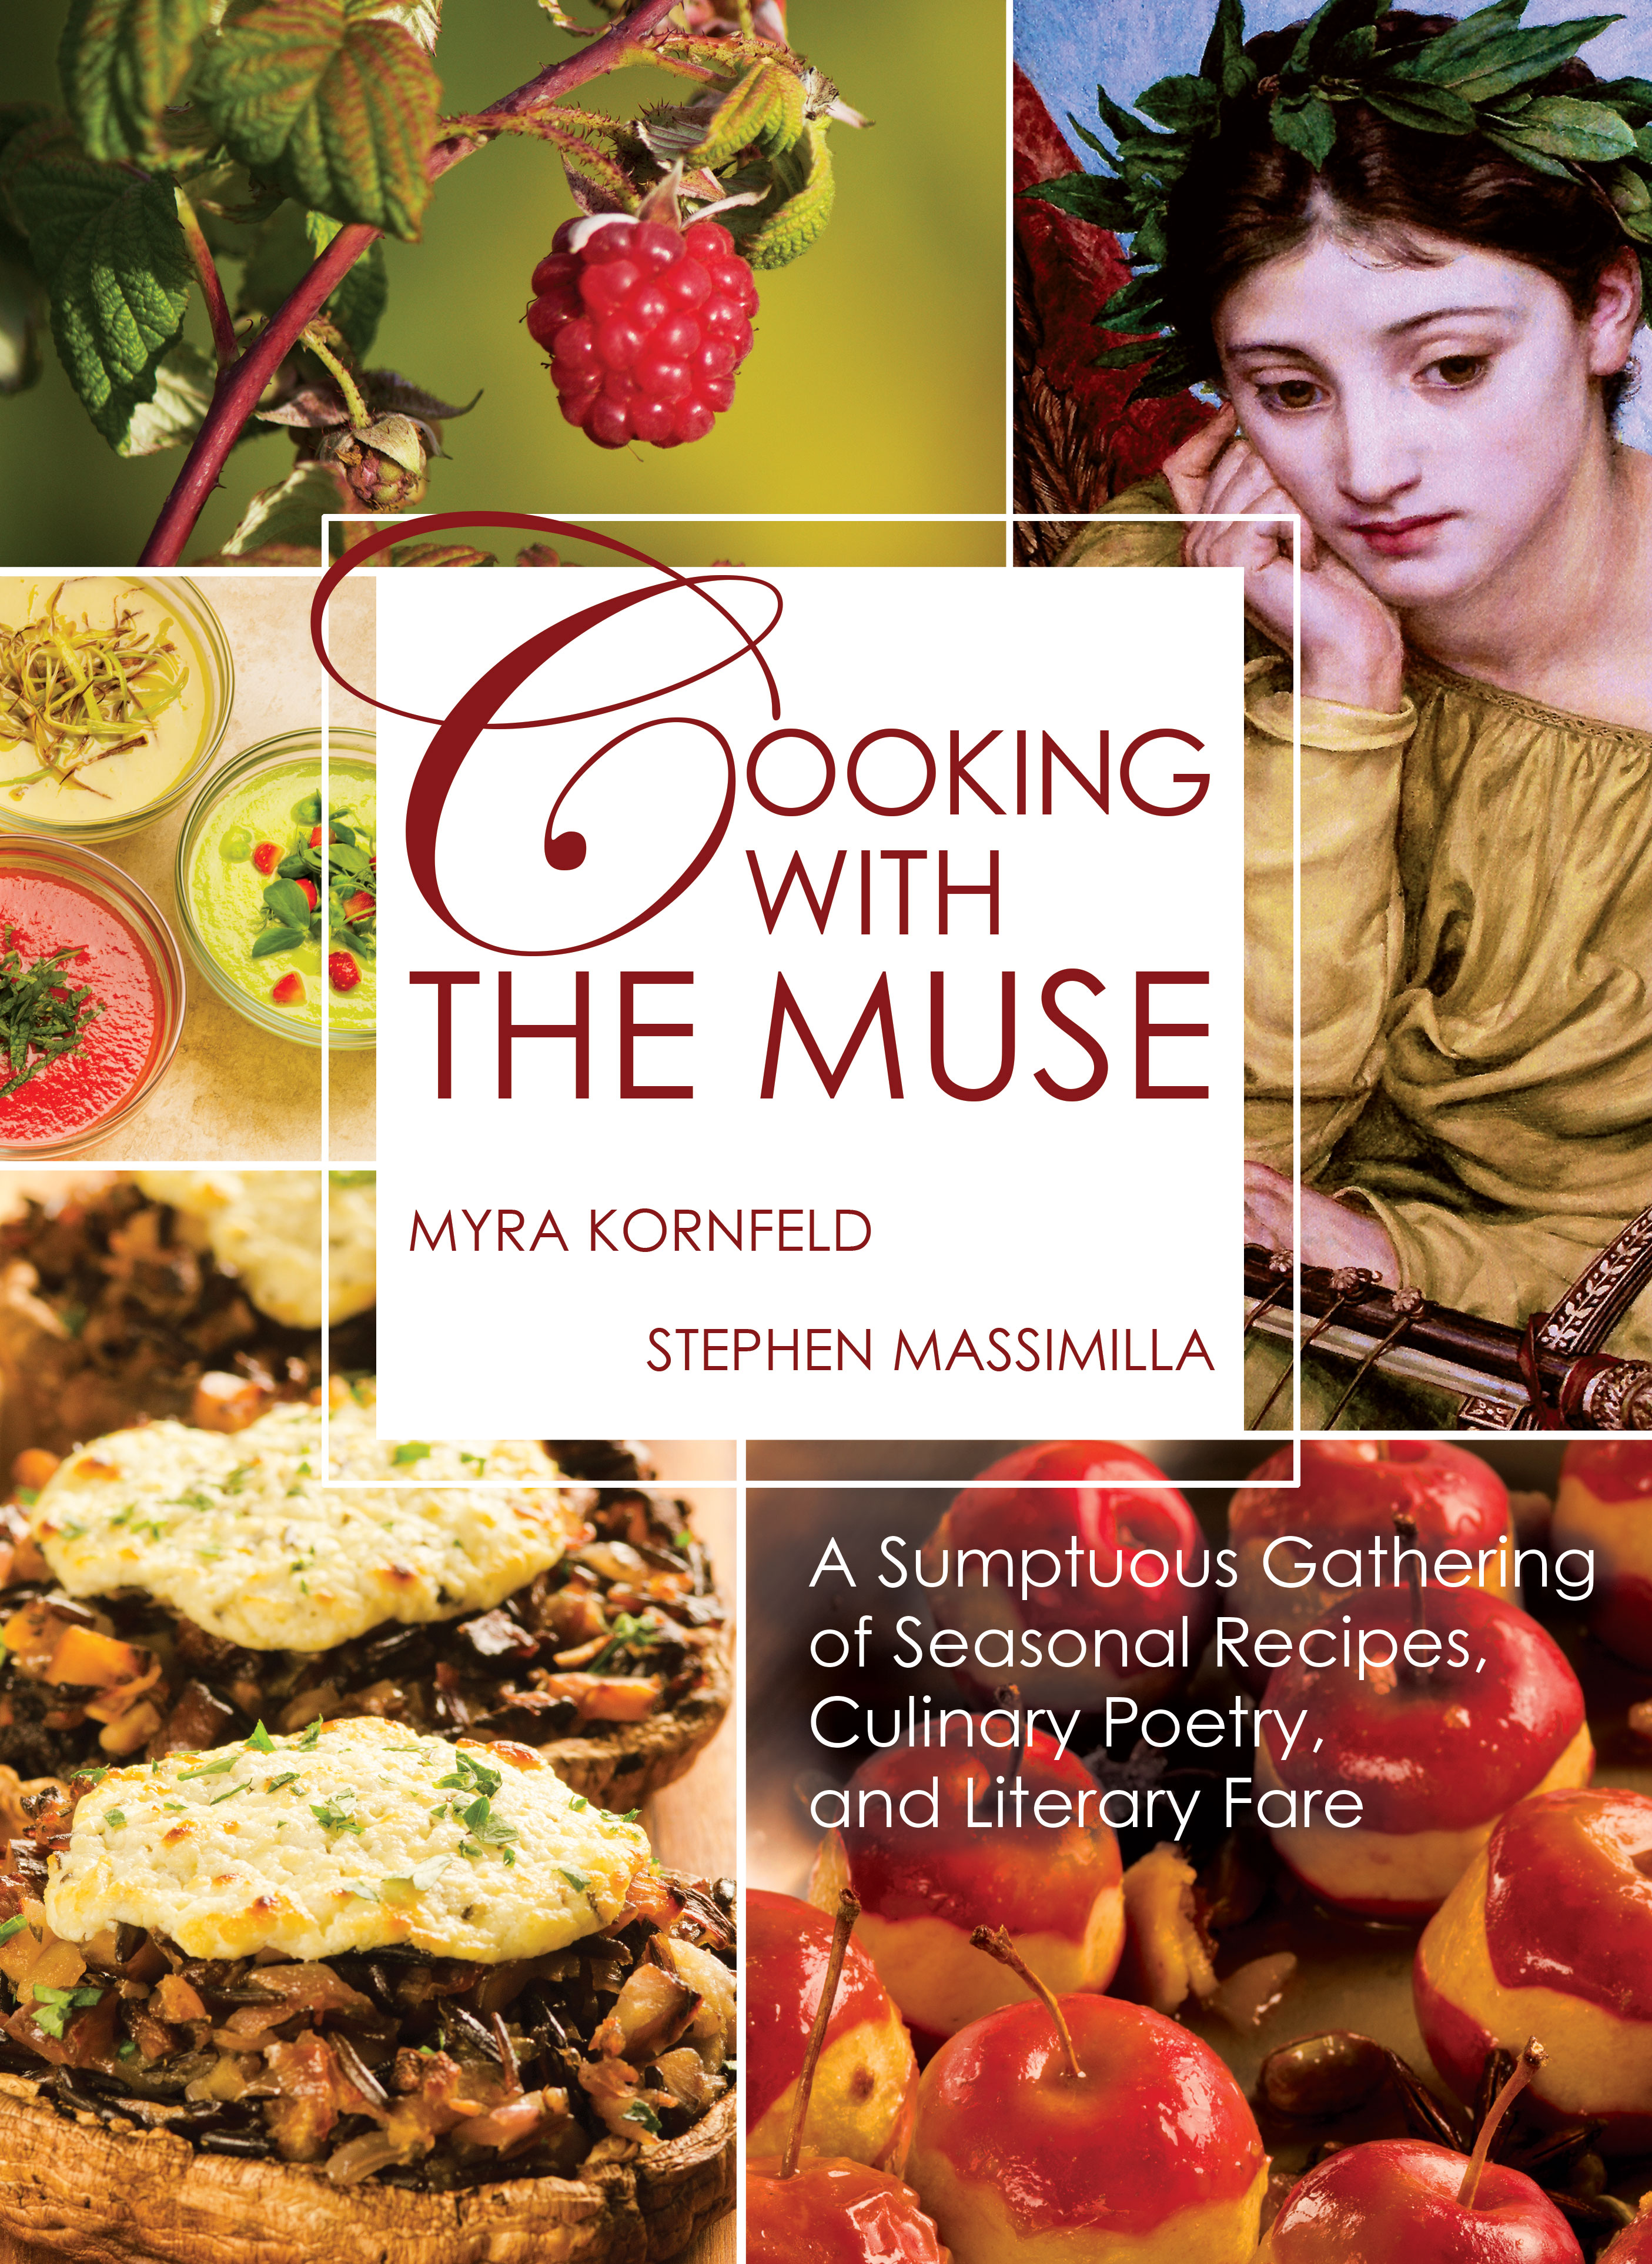 Cooking with the Muse: A Sumptuous Gathering of Seasonal Recipes, Culinary Poetry and Literary Fare